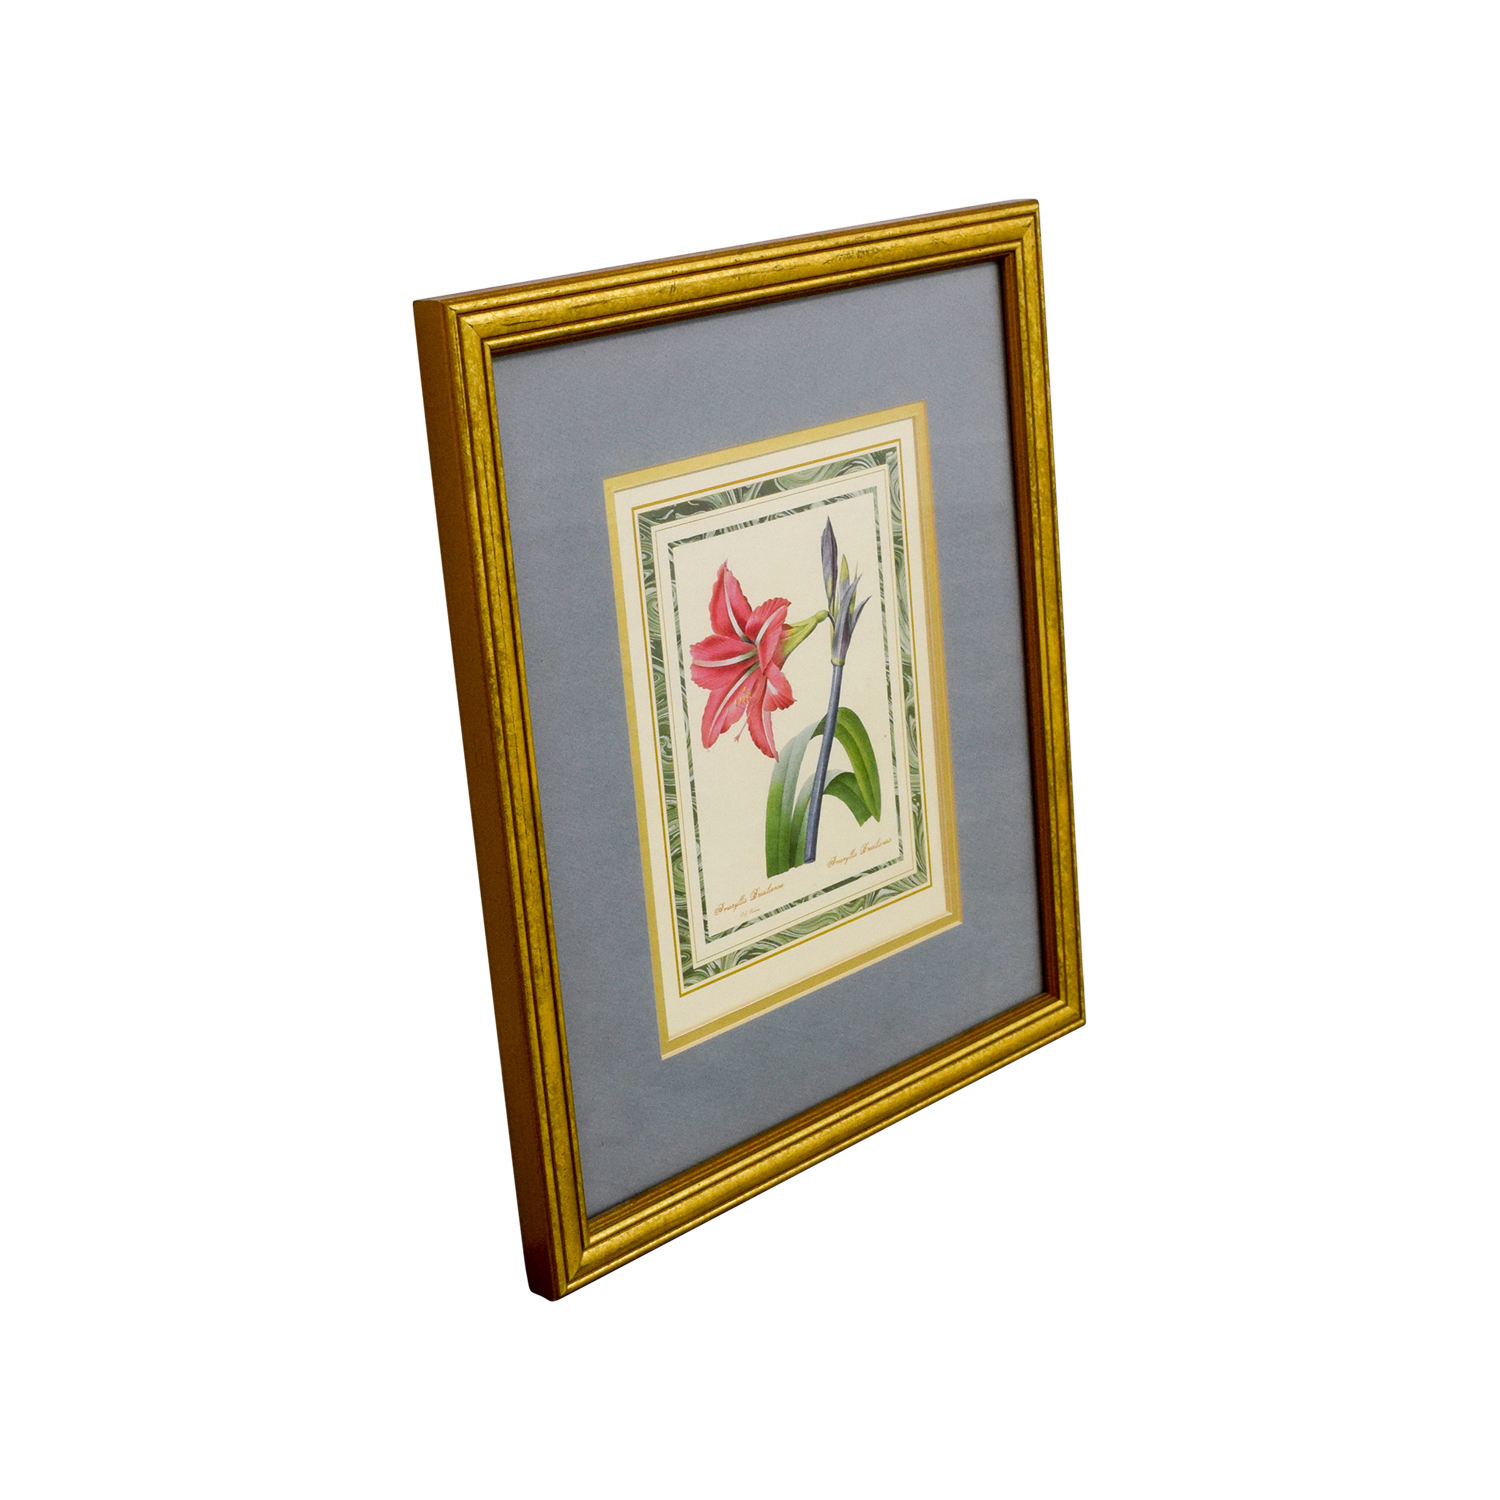 Scully & Scully Scully & Scully Gold Framed Botanical Print for sale